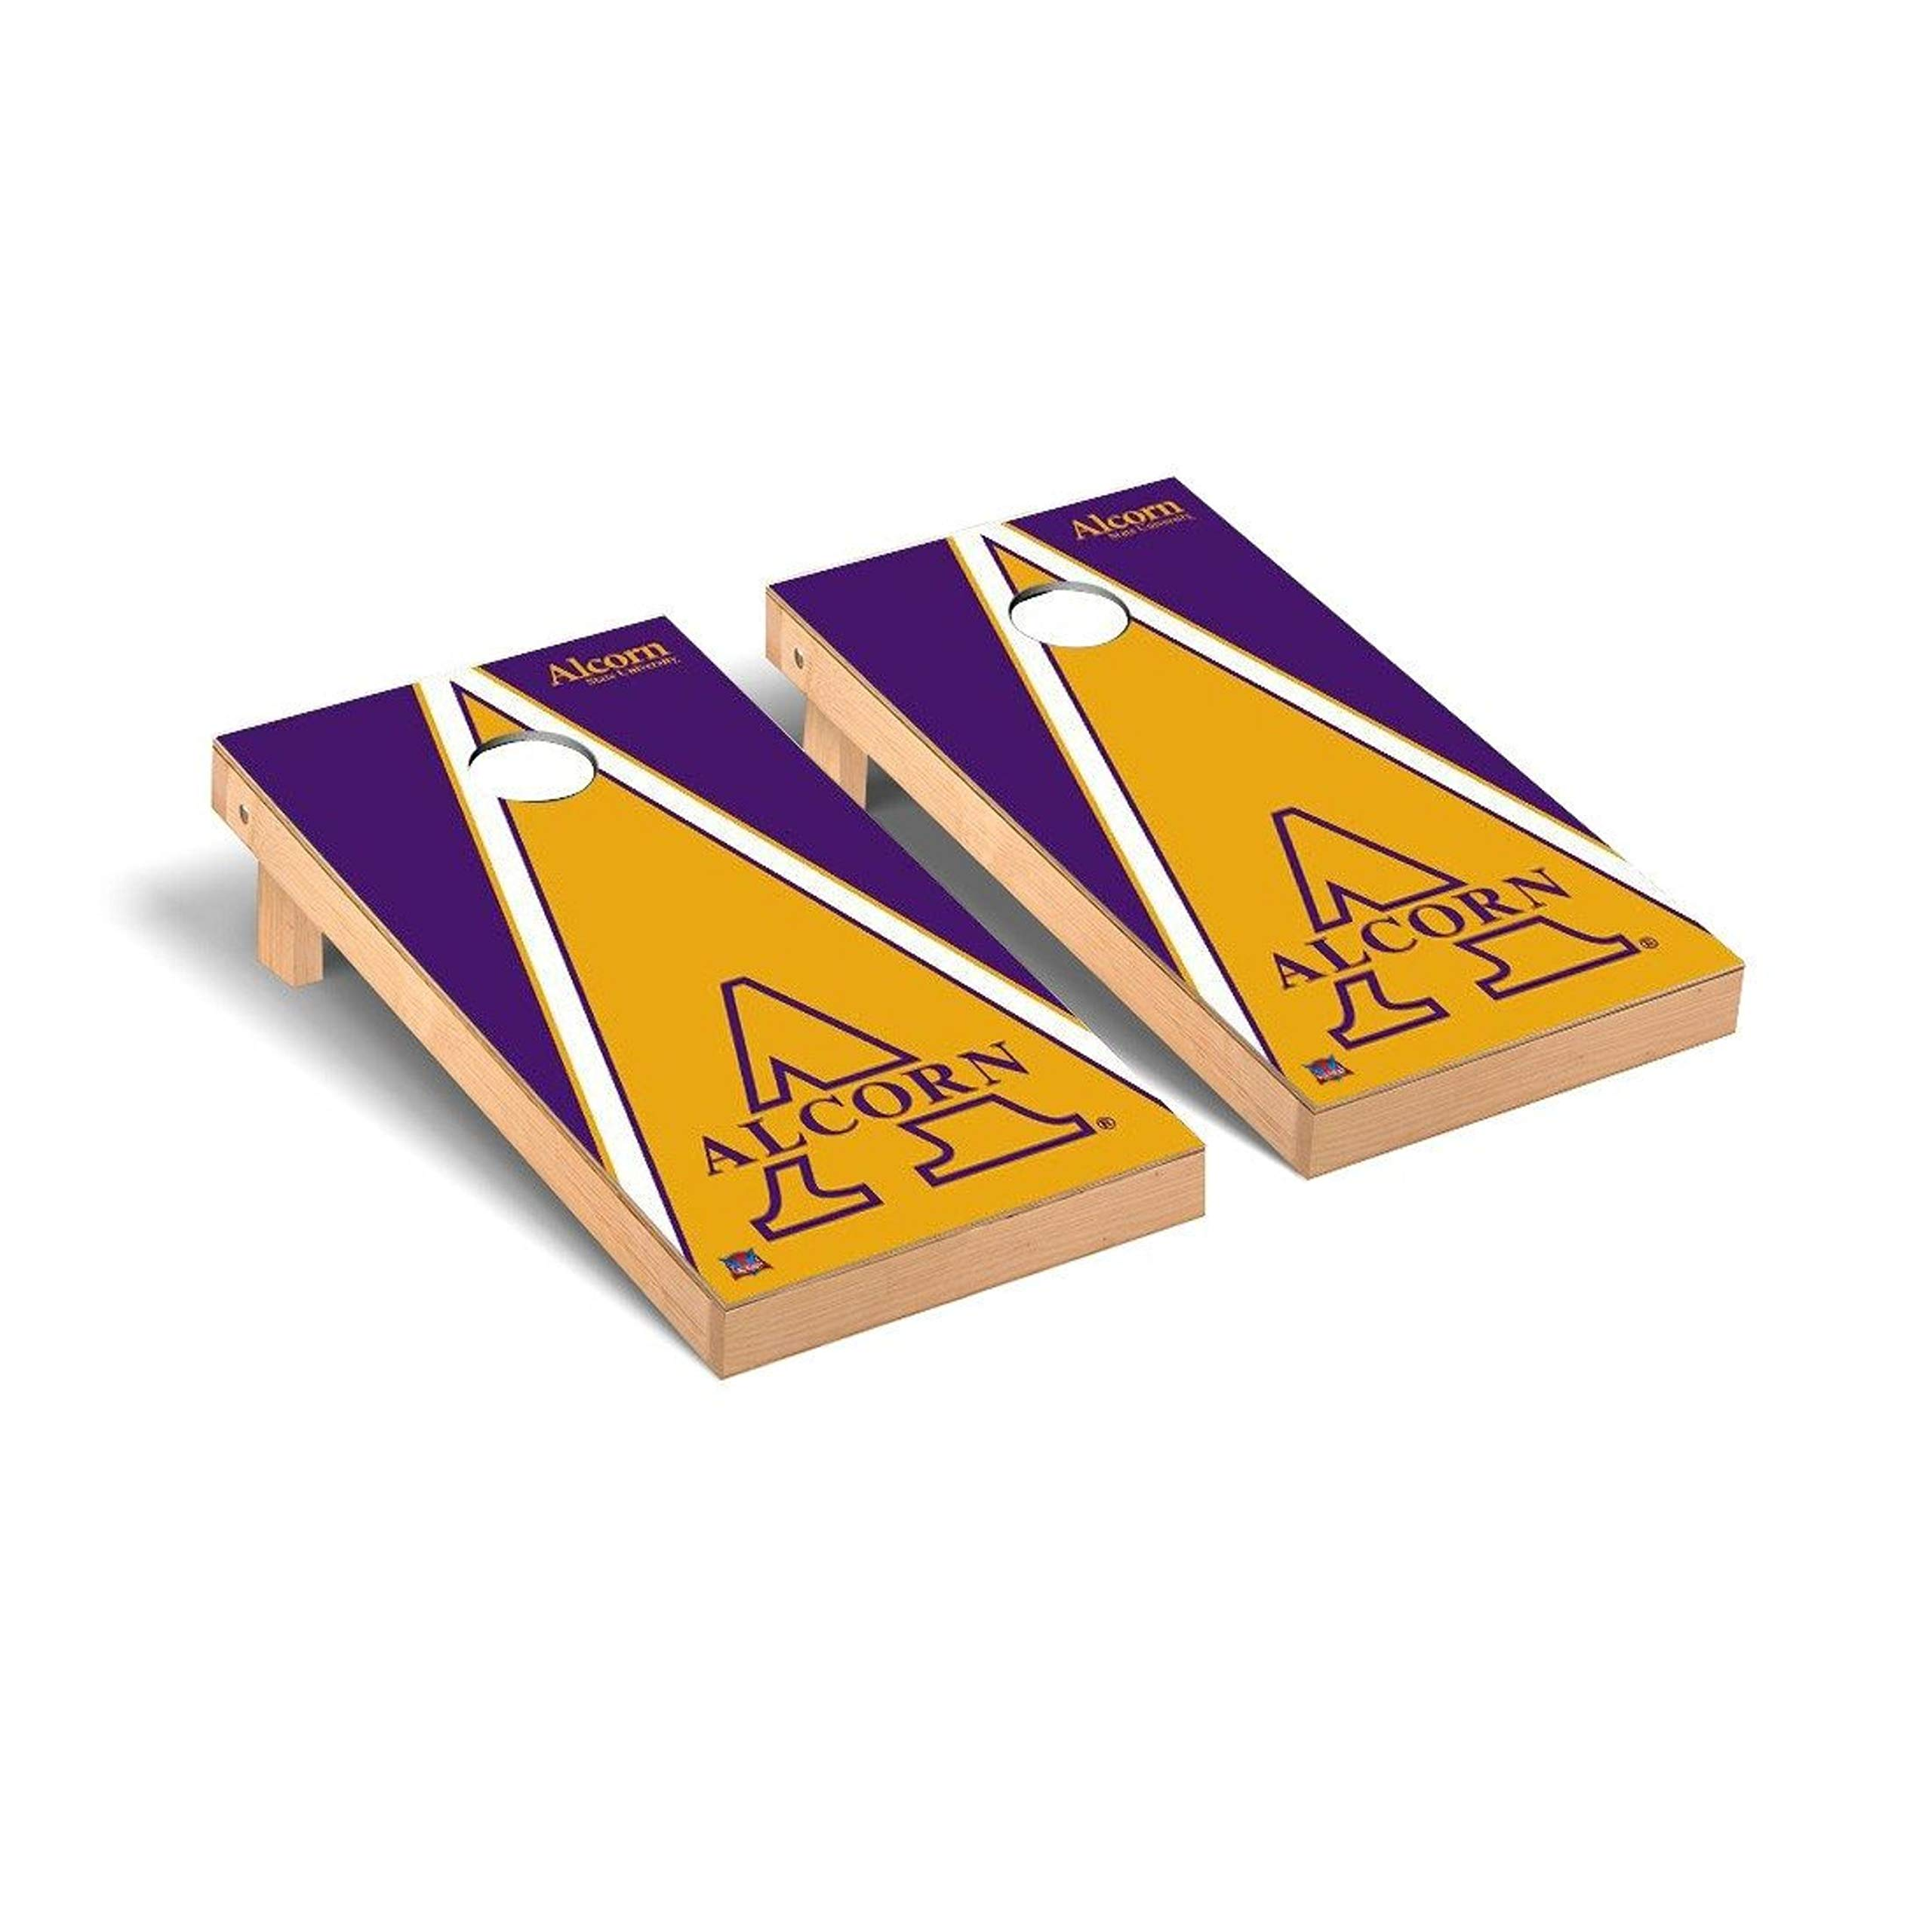 Victory Tailgate Regulation Collegiate NCAA Triangle Series Cornhole Board Set - 2 Boards, 8 Bags - Alcorn State Braves